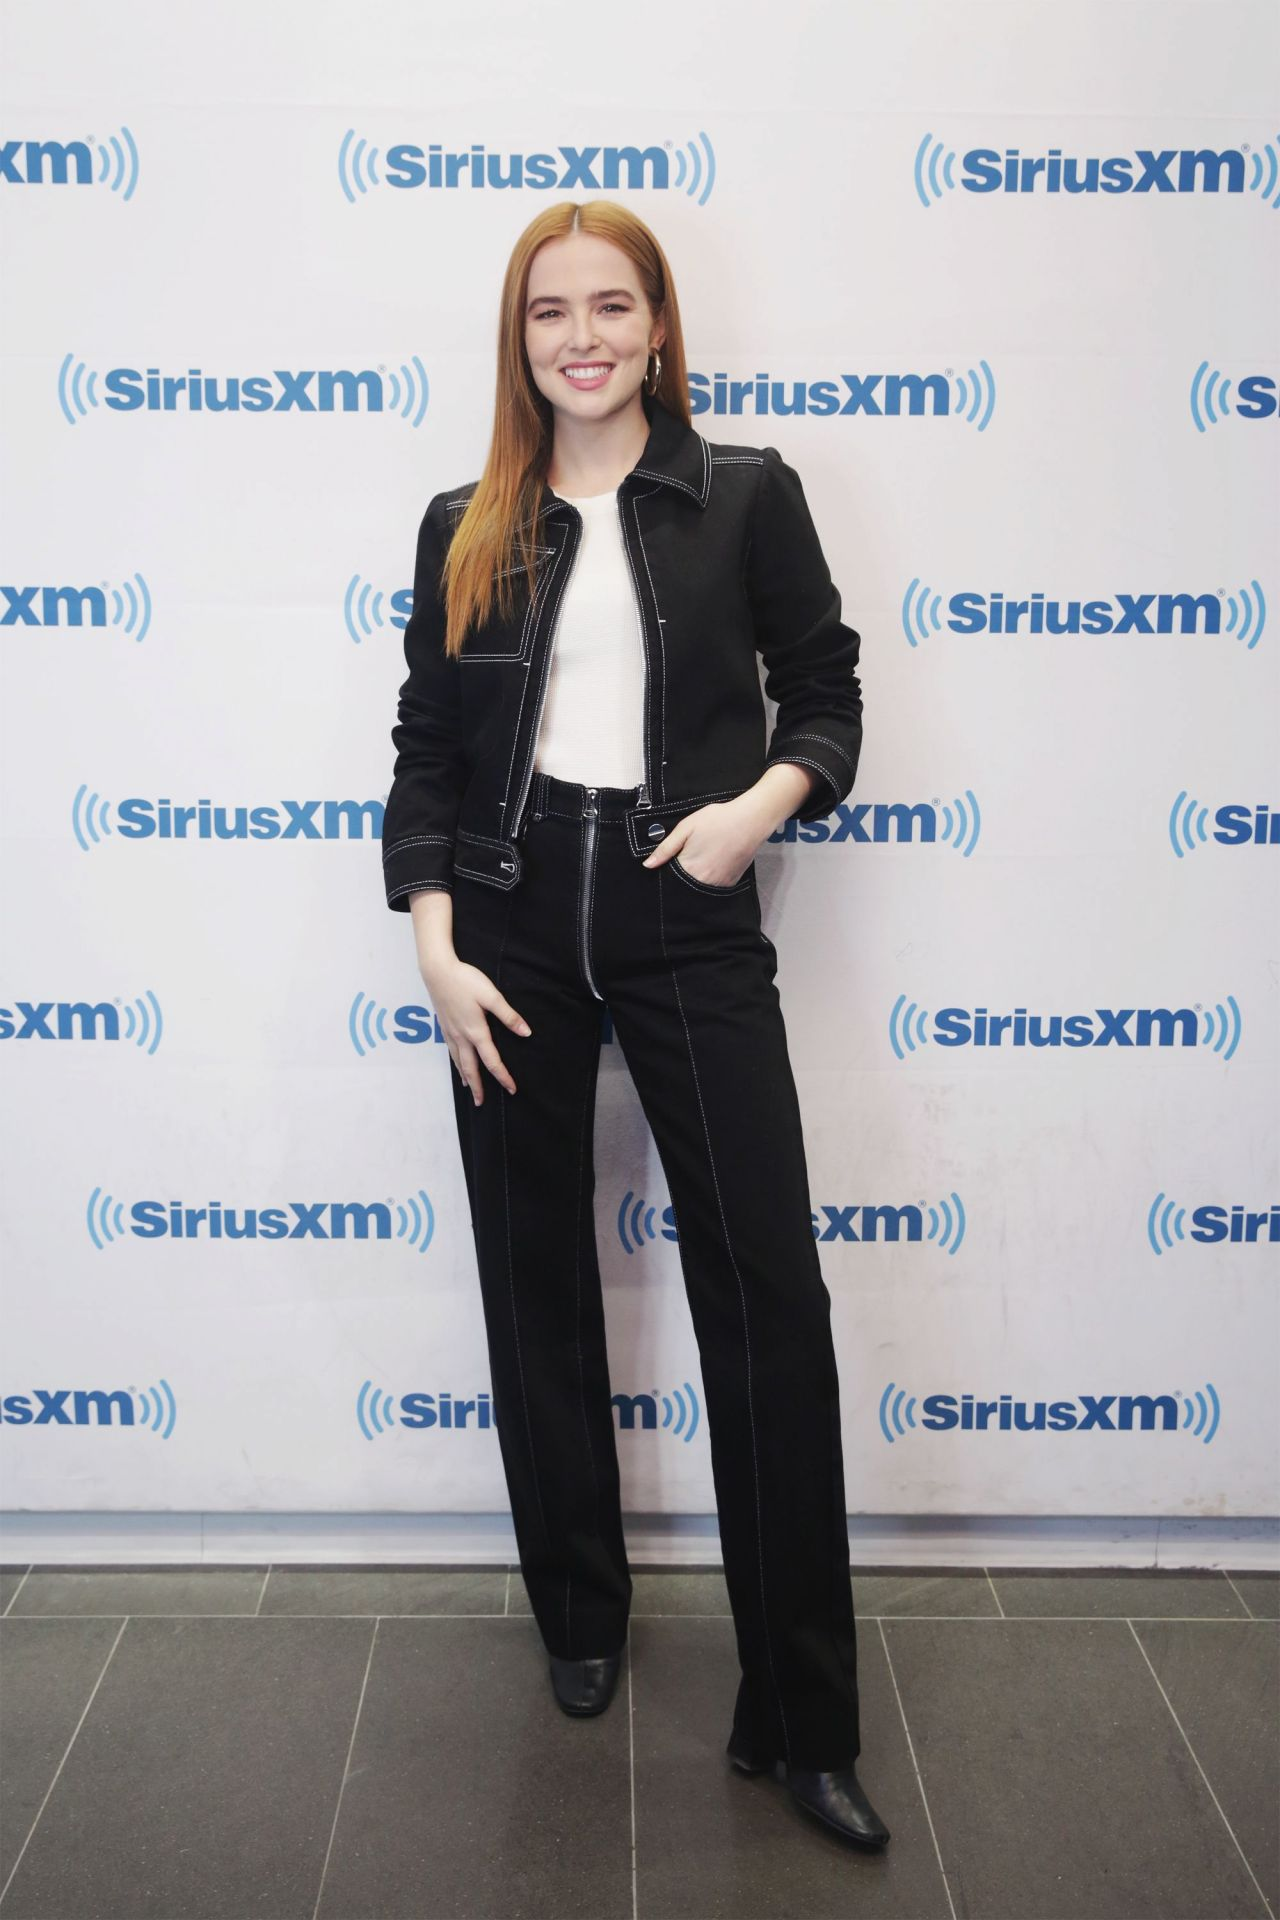 http://celebmafia.com/wp-content/uploads/2018/03/zoey-deutch-at-siriusxm-studios-in-nyc-03-20-2018-4.jpg